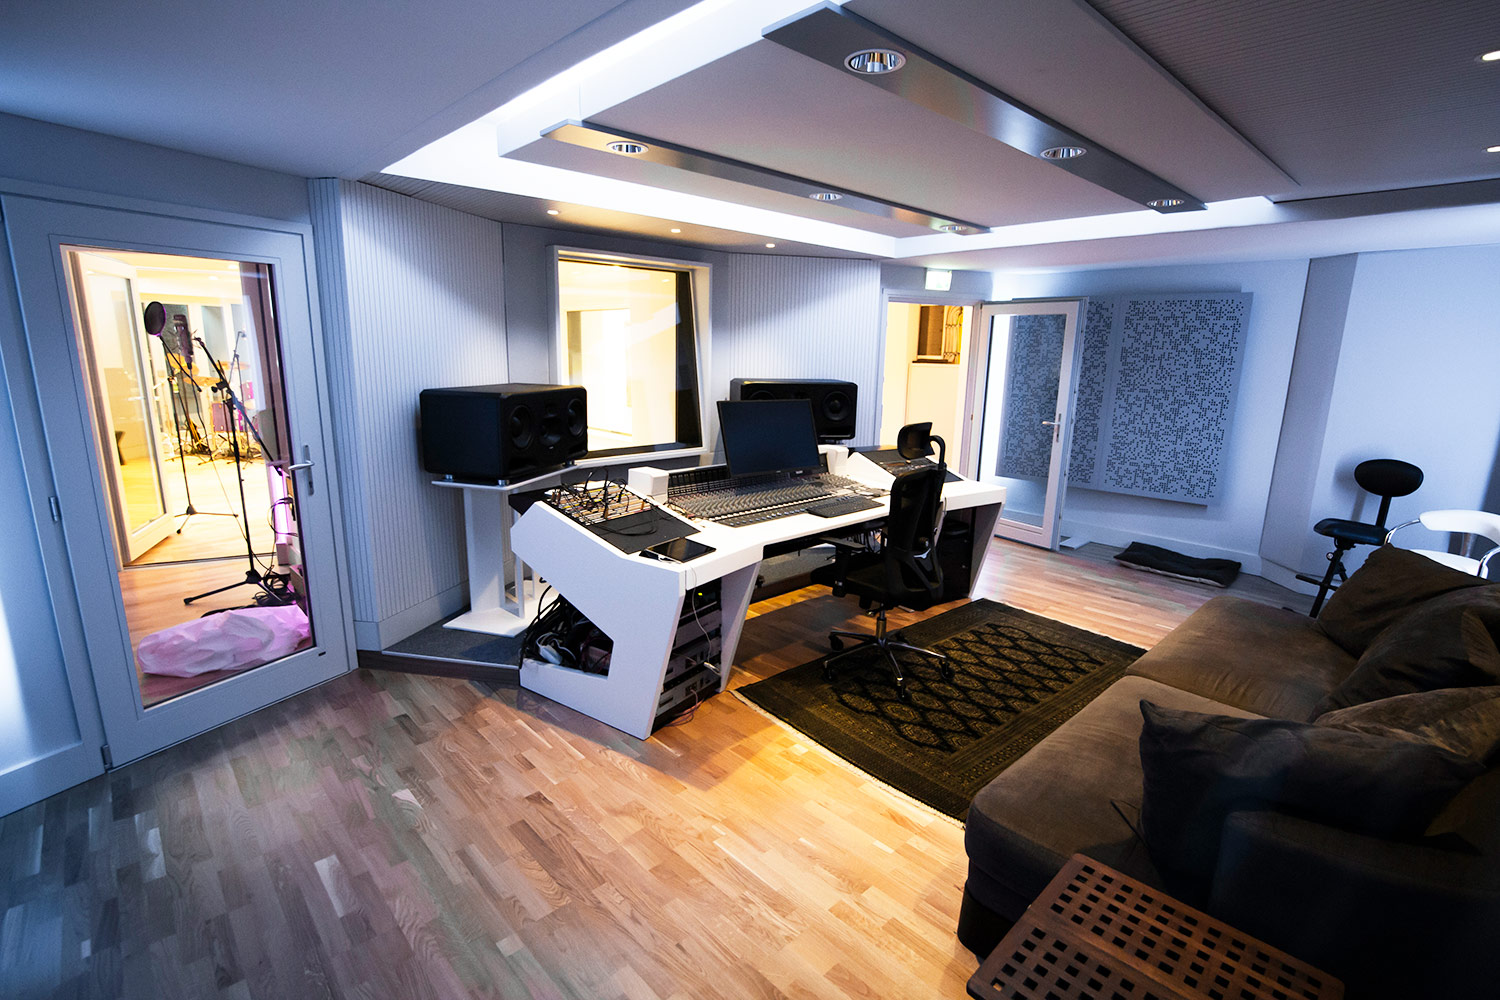 Vienna City Sound is a twelve-room recording studio built in the basement of a vintage commercial building in the heart of Vienna. Owner Peter Zimmerl's retained the services of WSDG to design his dream studio. Control room.